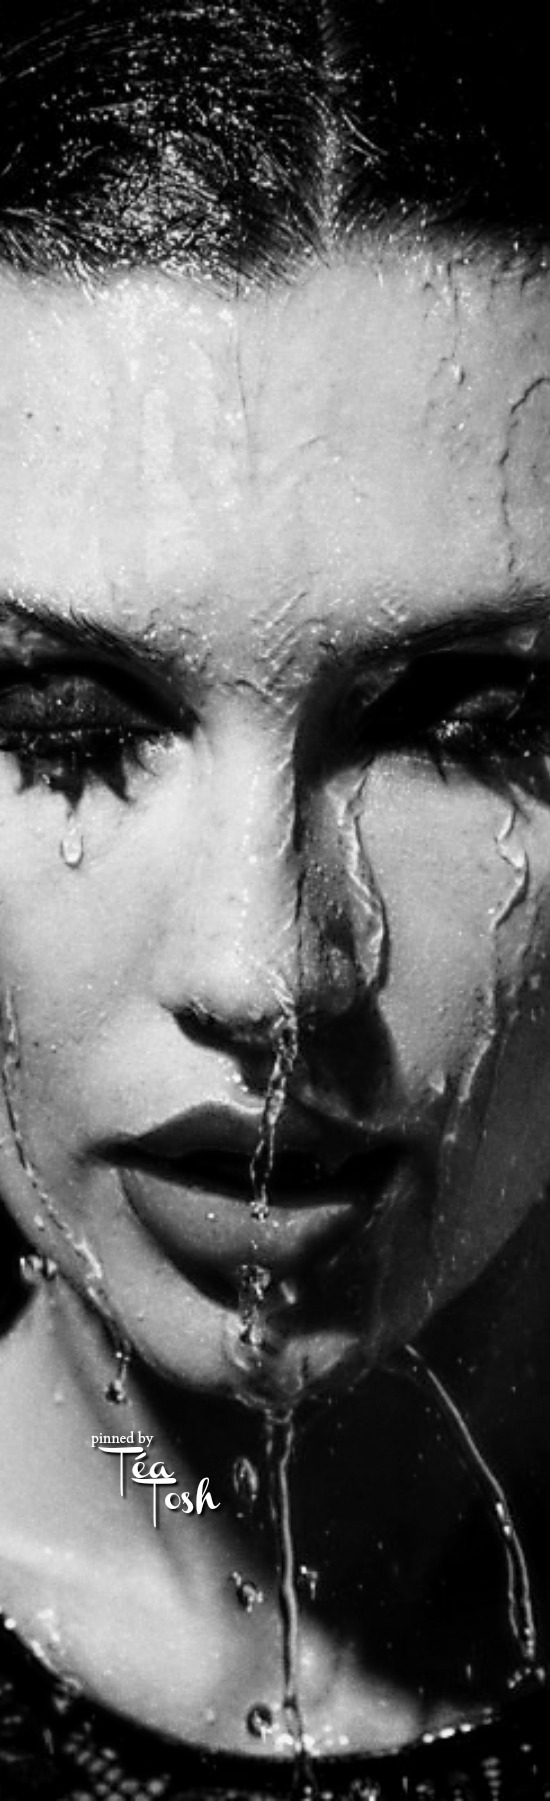 Téa Tosh | Wet and wild, Waterfall, Black and white